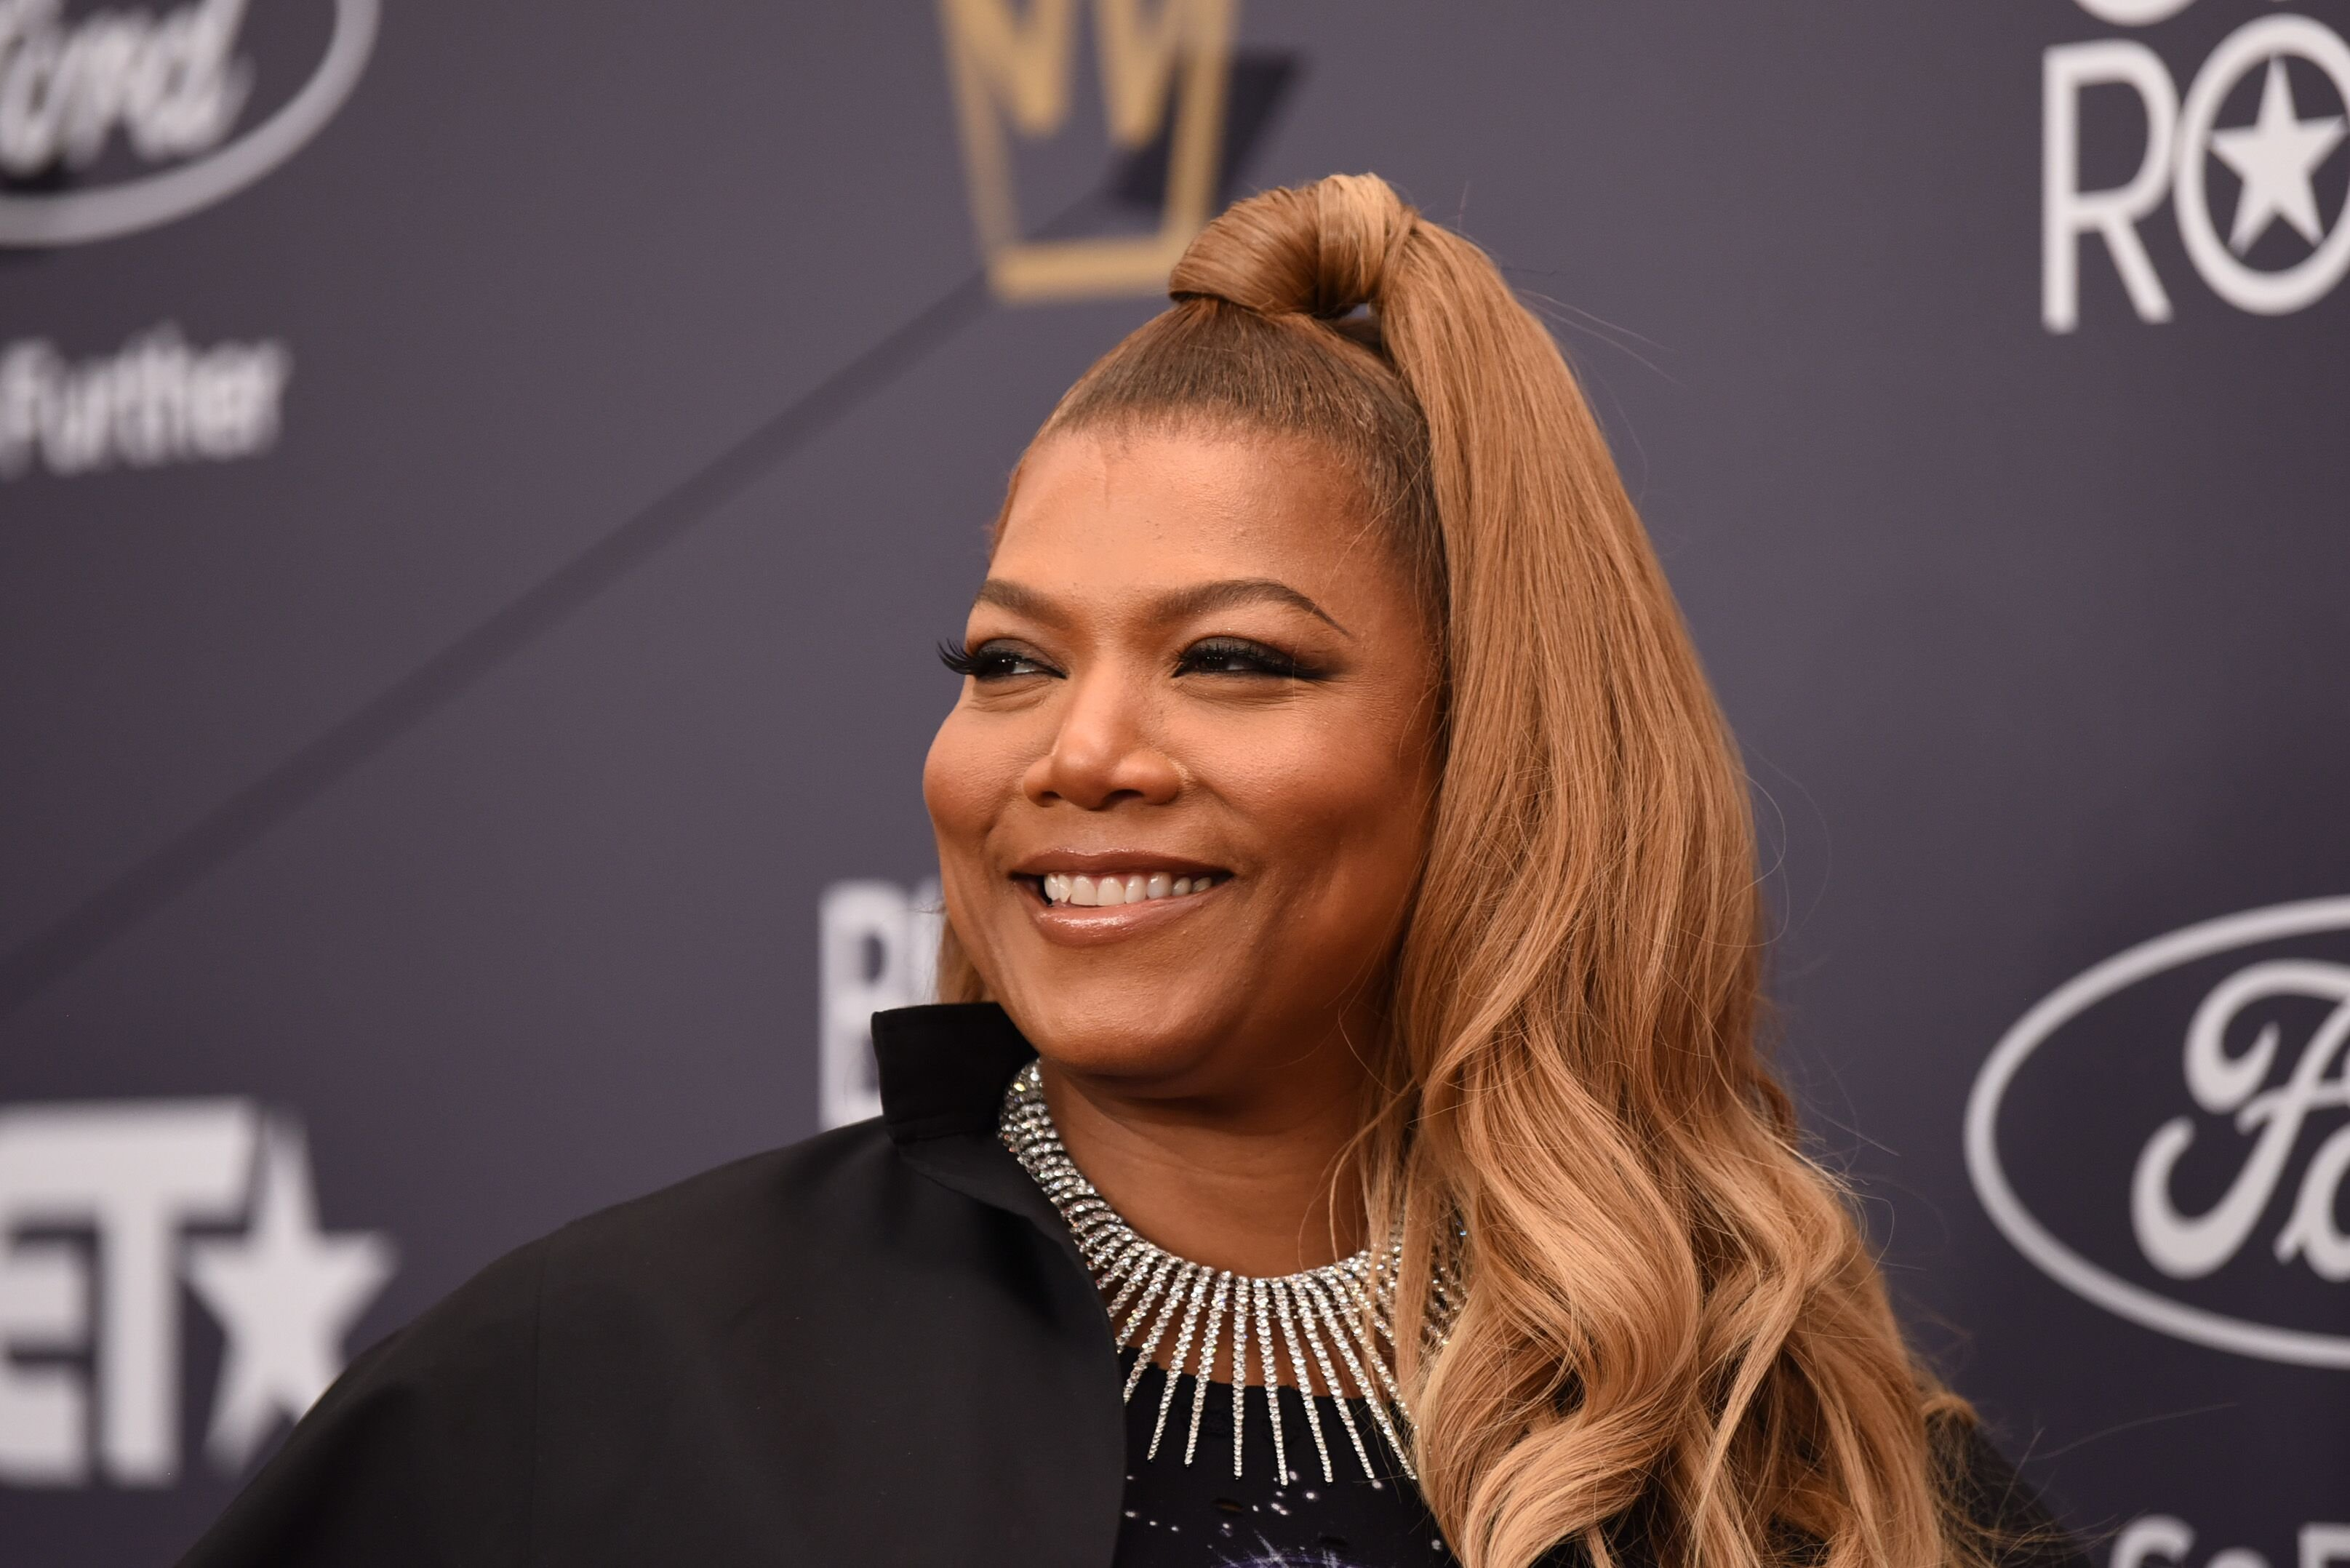 Queen Latifah at the Black Girls Rock! 2018 Red Carpet. | Source: Getty Images